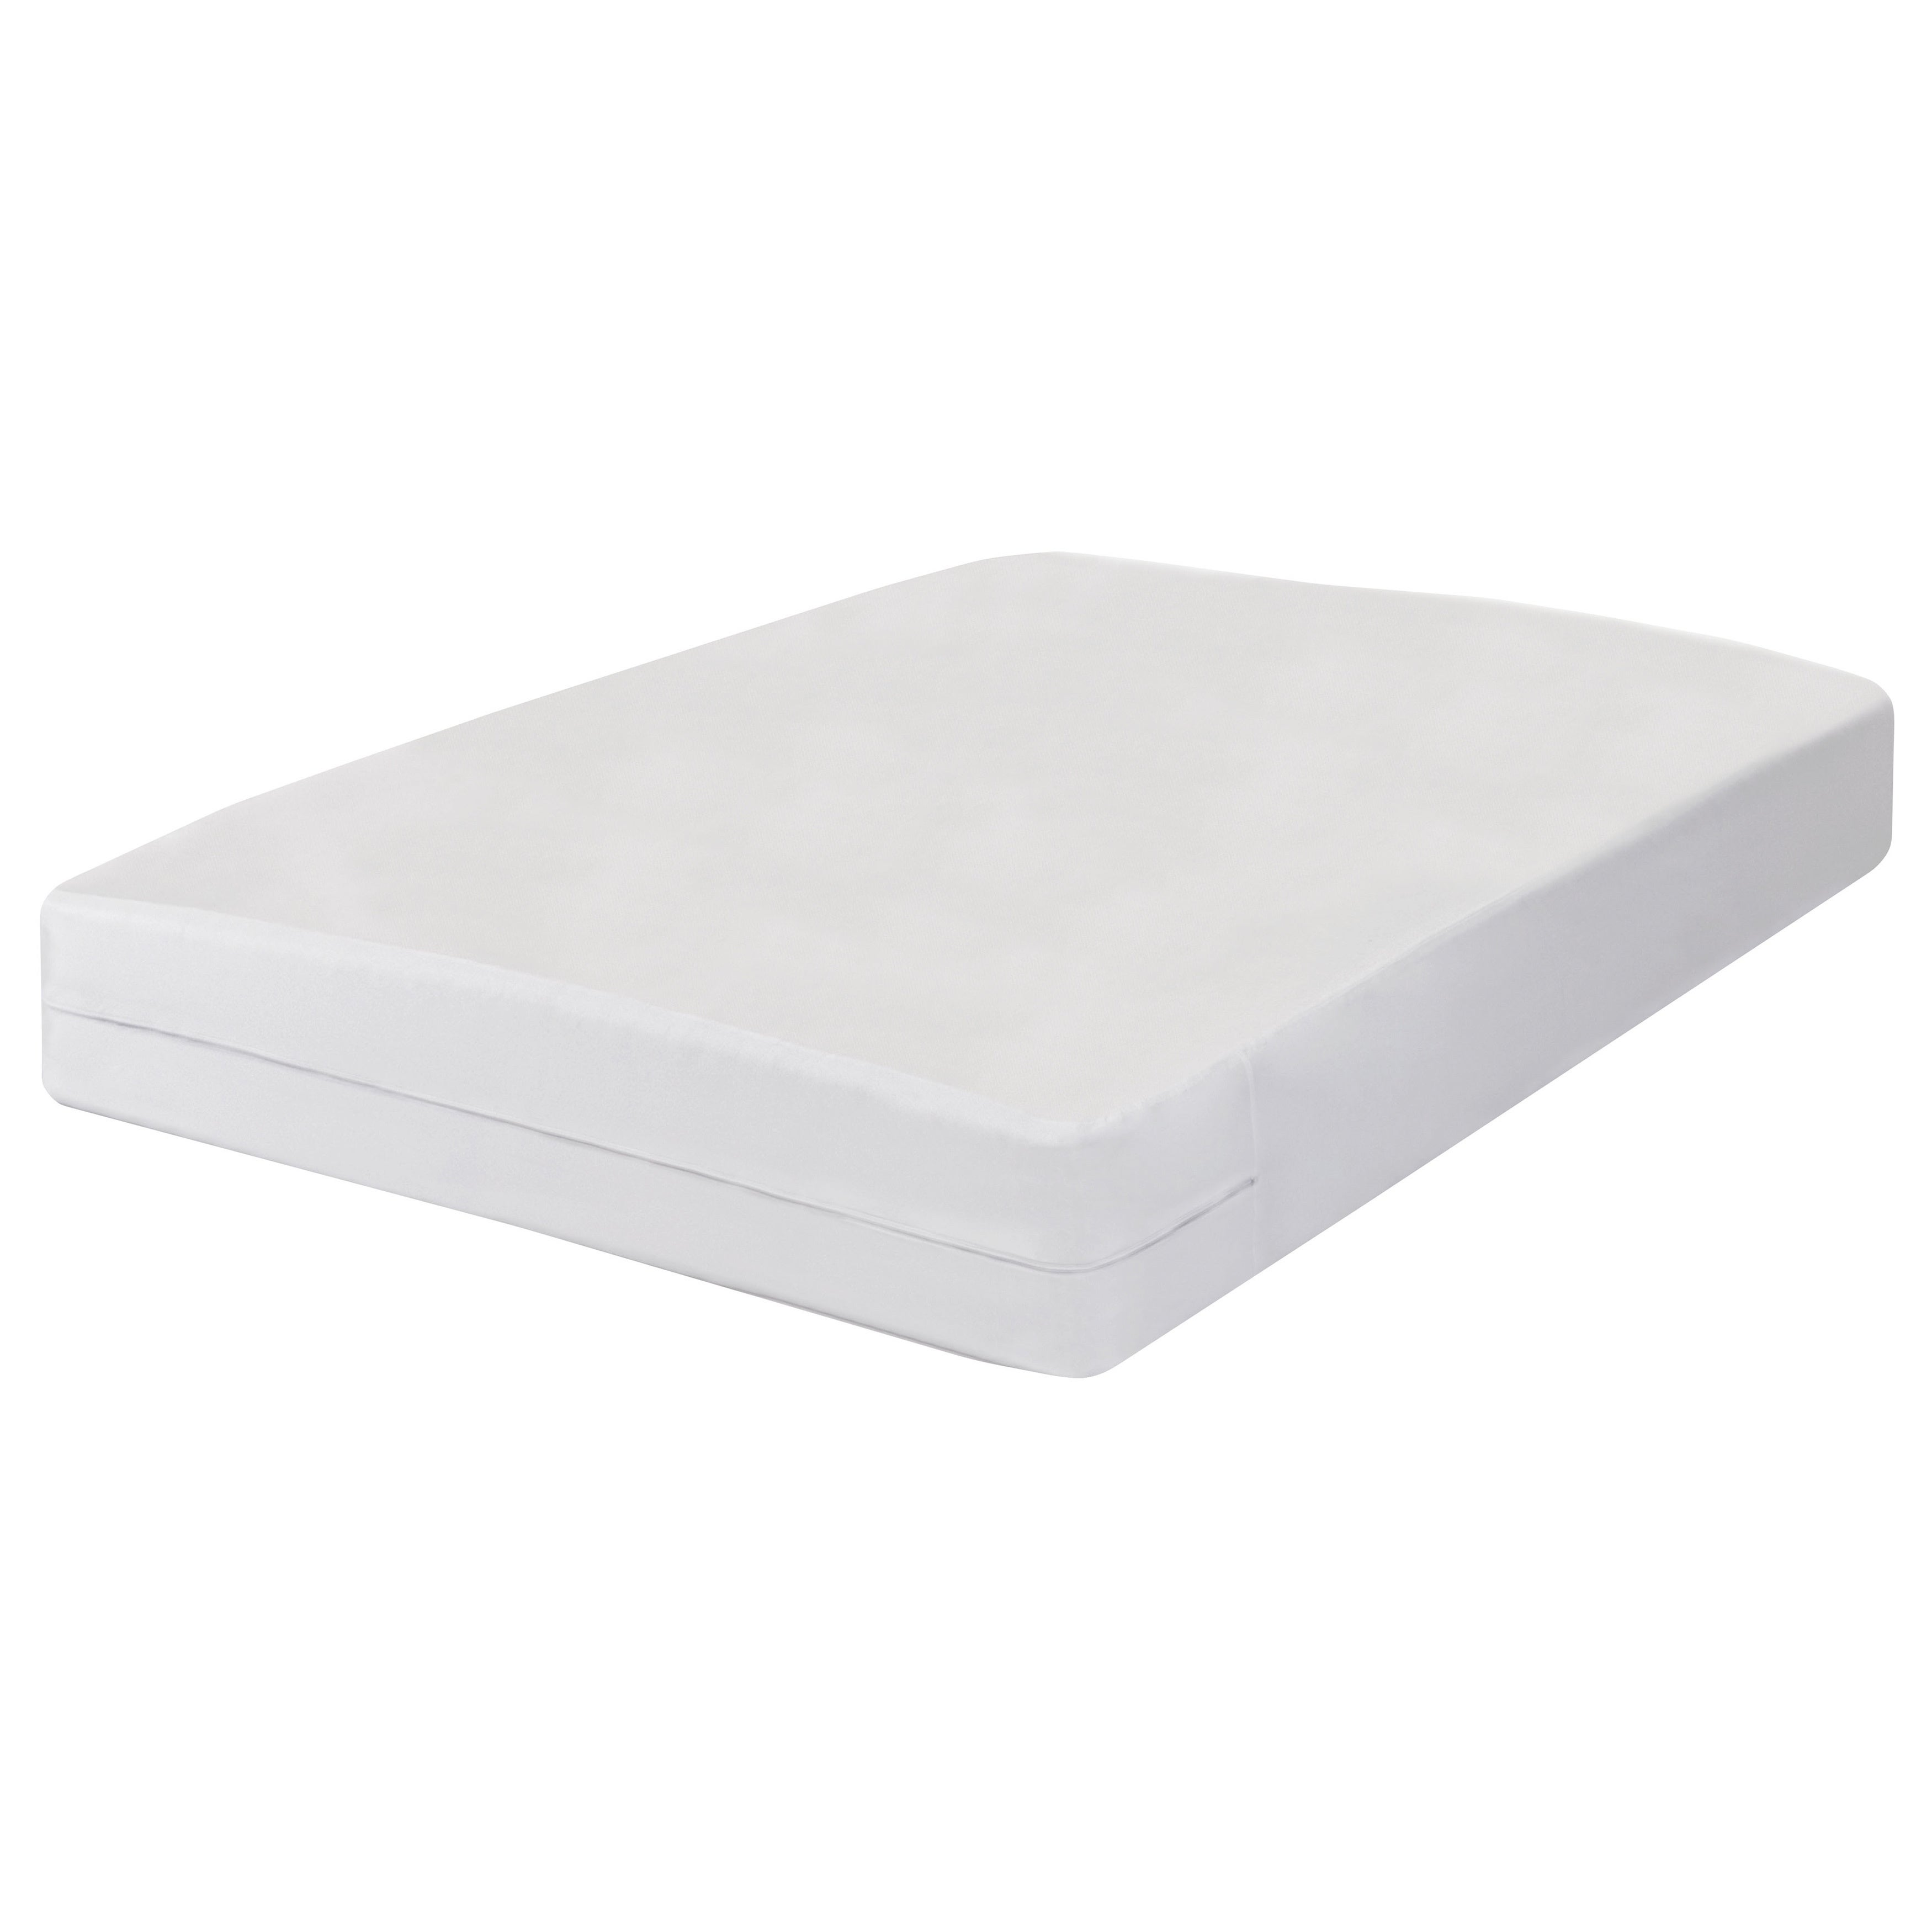 Shop All In One Protection With Bed Bug Blocker Cotton Rich Mattress